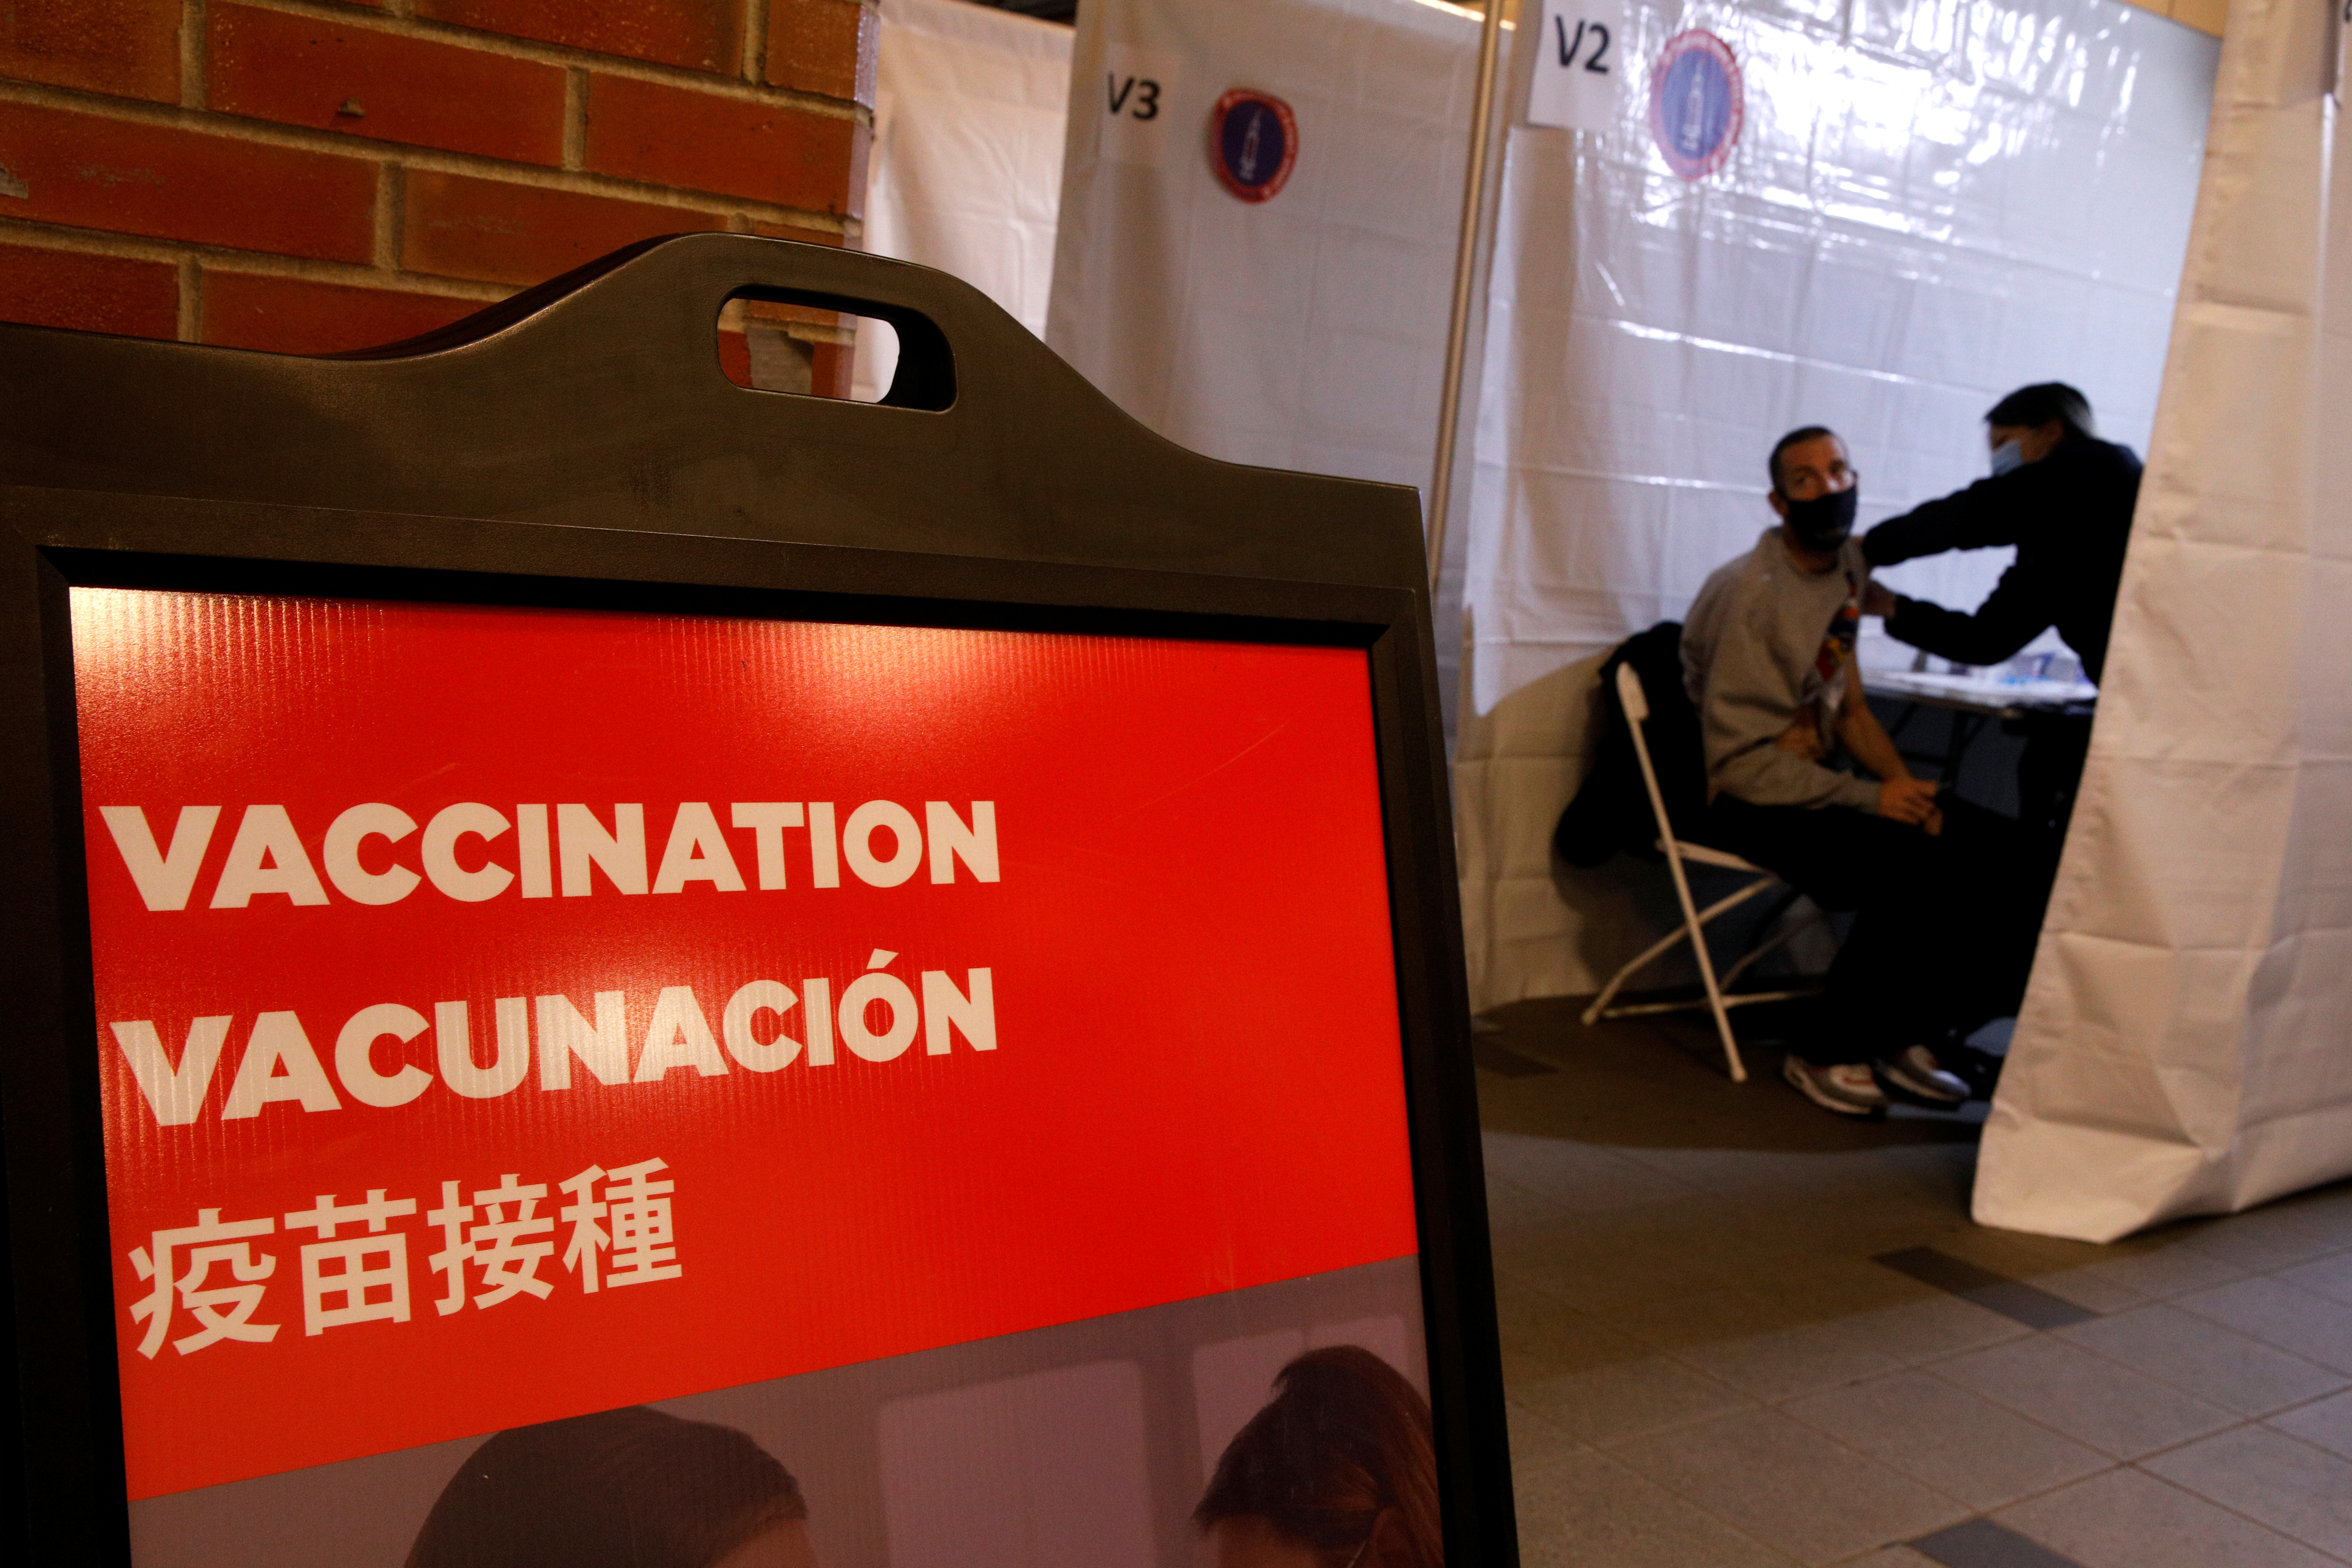 A commuter receives a shot of the Johnson & Johnson vaccine for the coronavirus disease (COVID-19) during the opening of MTA's public vaccination program at a subway station in the Brooklyn borough of New York City, New York, U.S., May 12, 2021. REUTERS/Brendan McDermid/File Photo